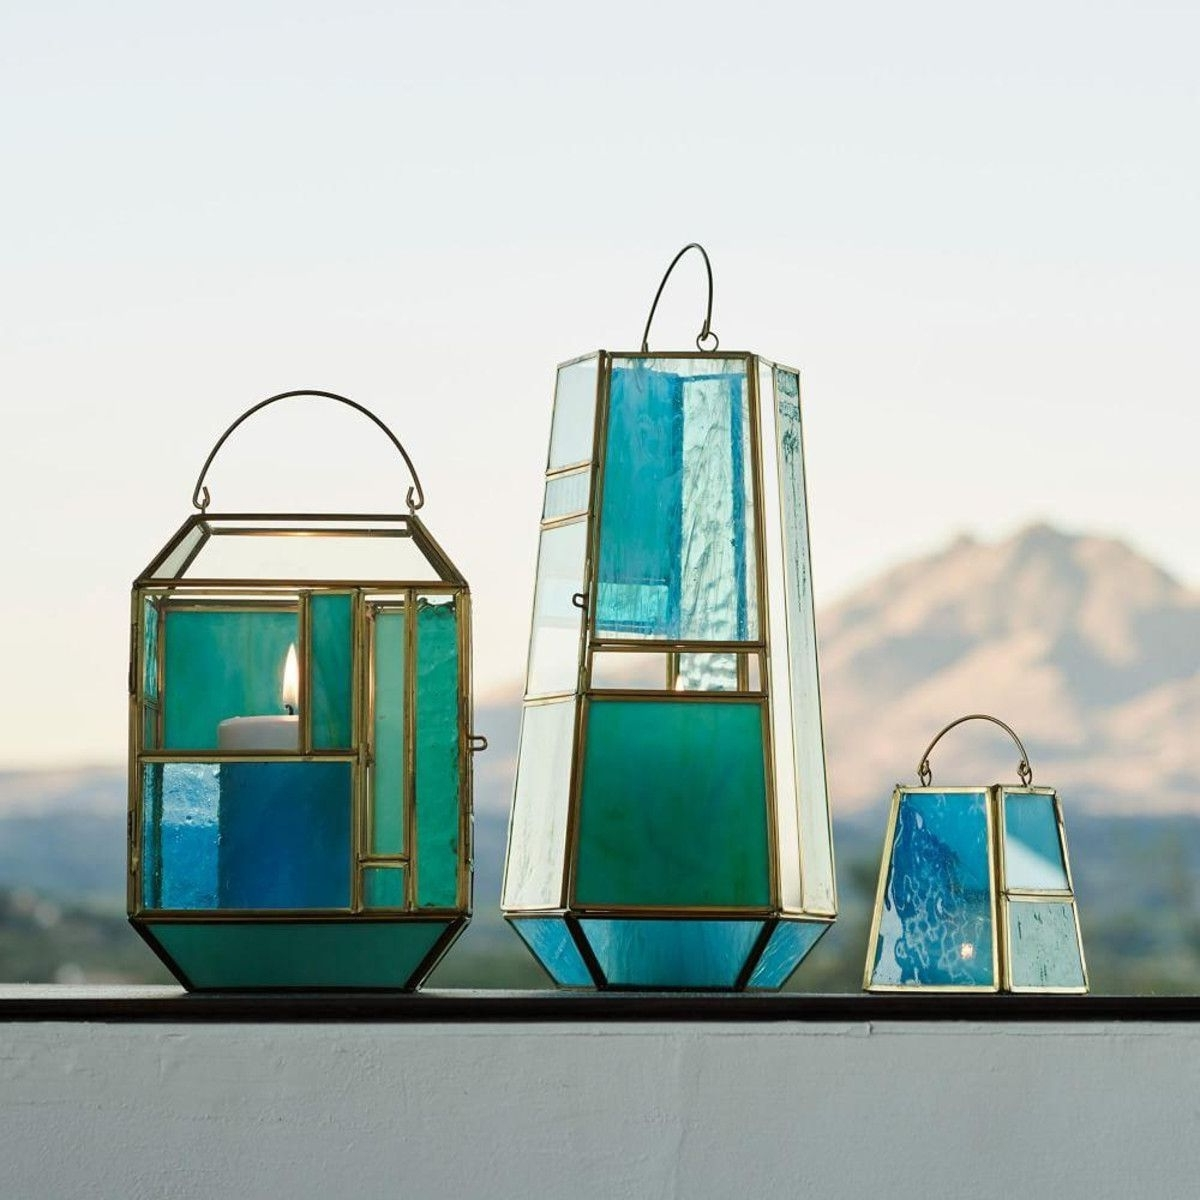 Famous Hang These Stained Glass Inspired Lanterns Inside Or Outside, To For Outdoor Glass Lanterns (View 17 of 20)